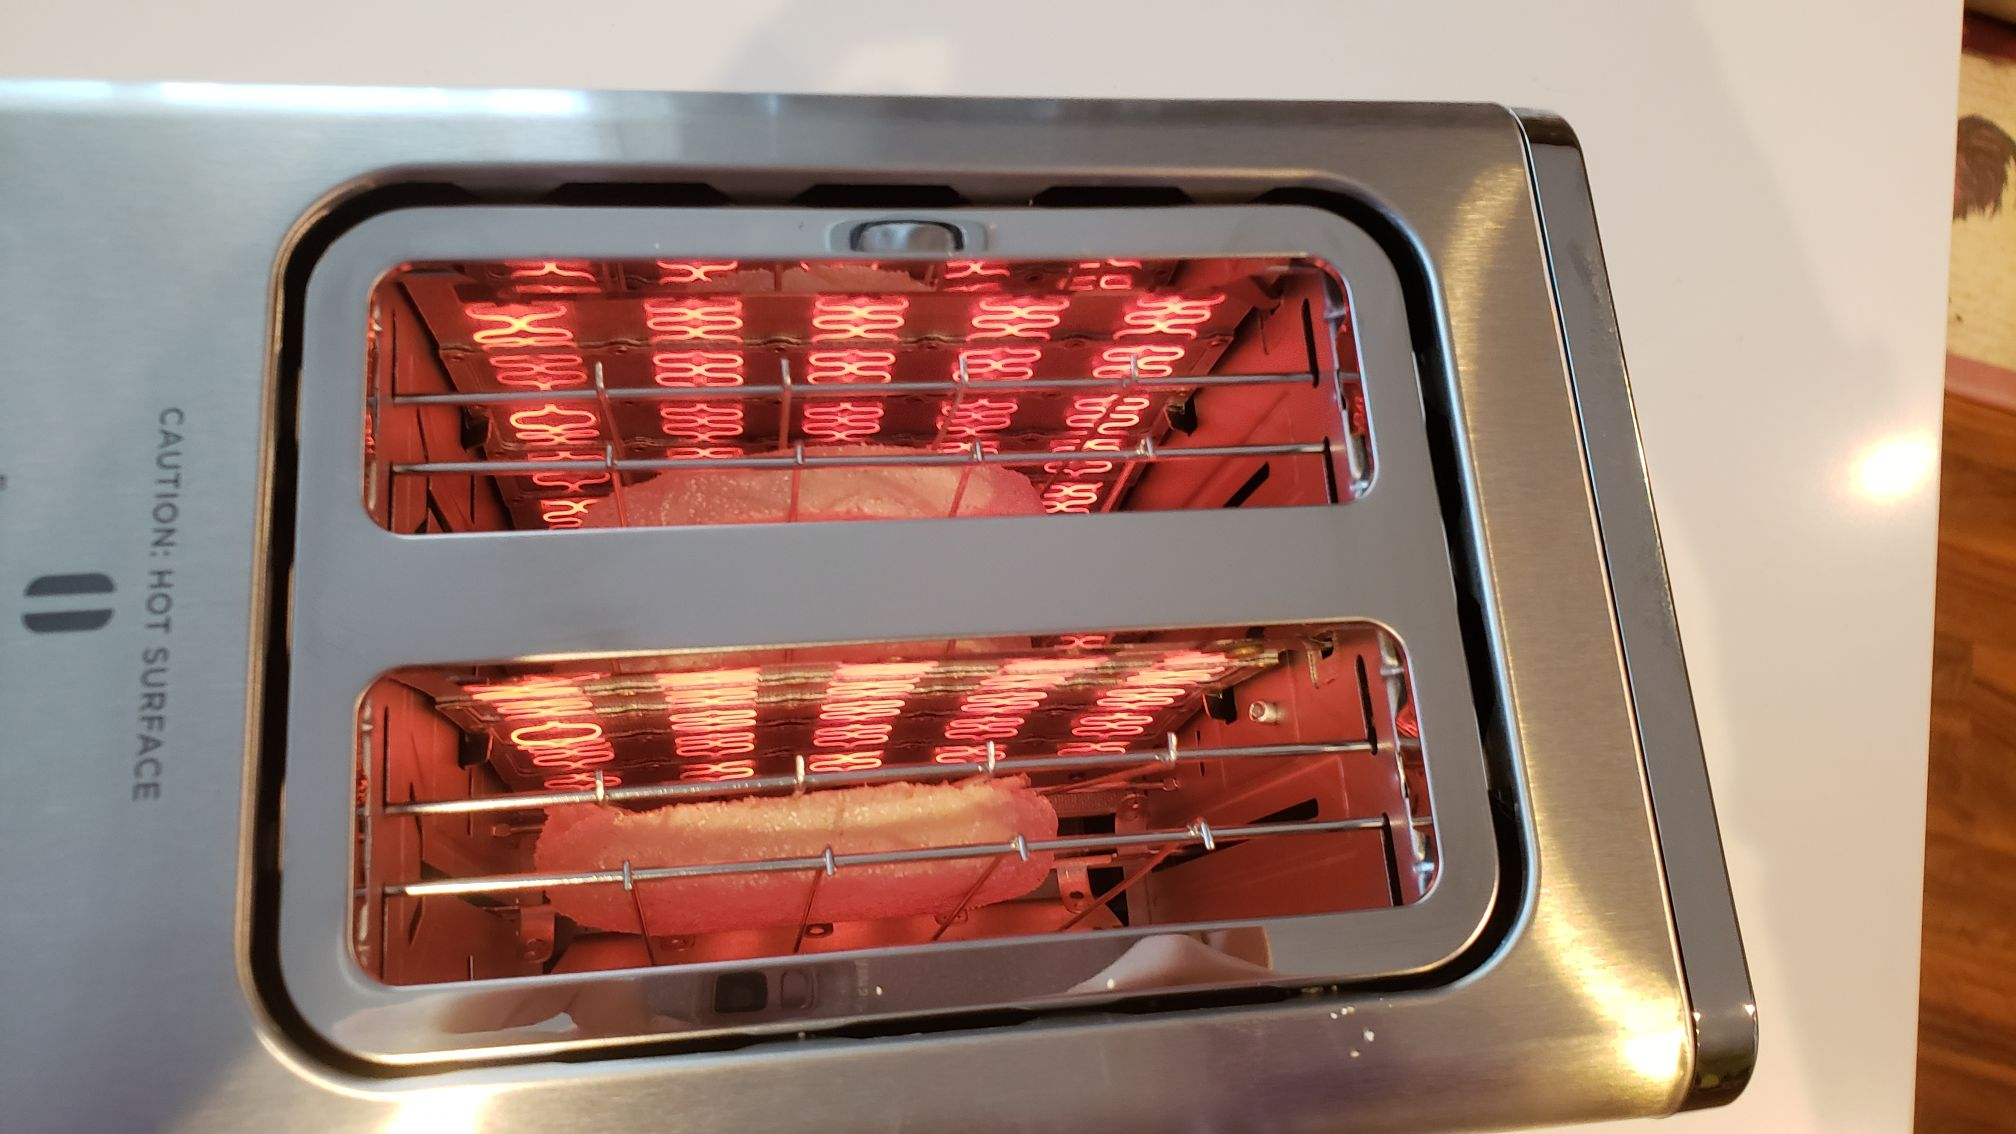 inside the Revolution Toaster as it uses InstaGlo to toast English muffins